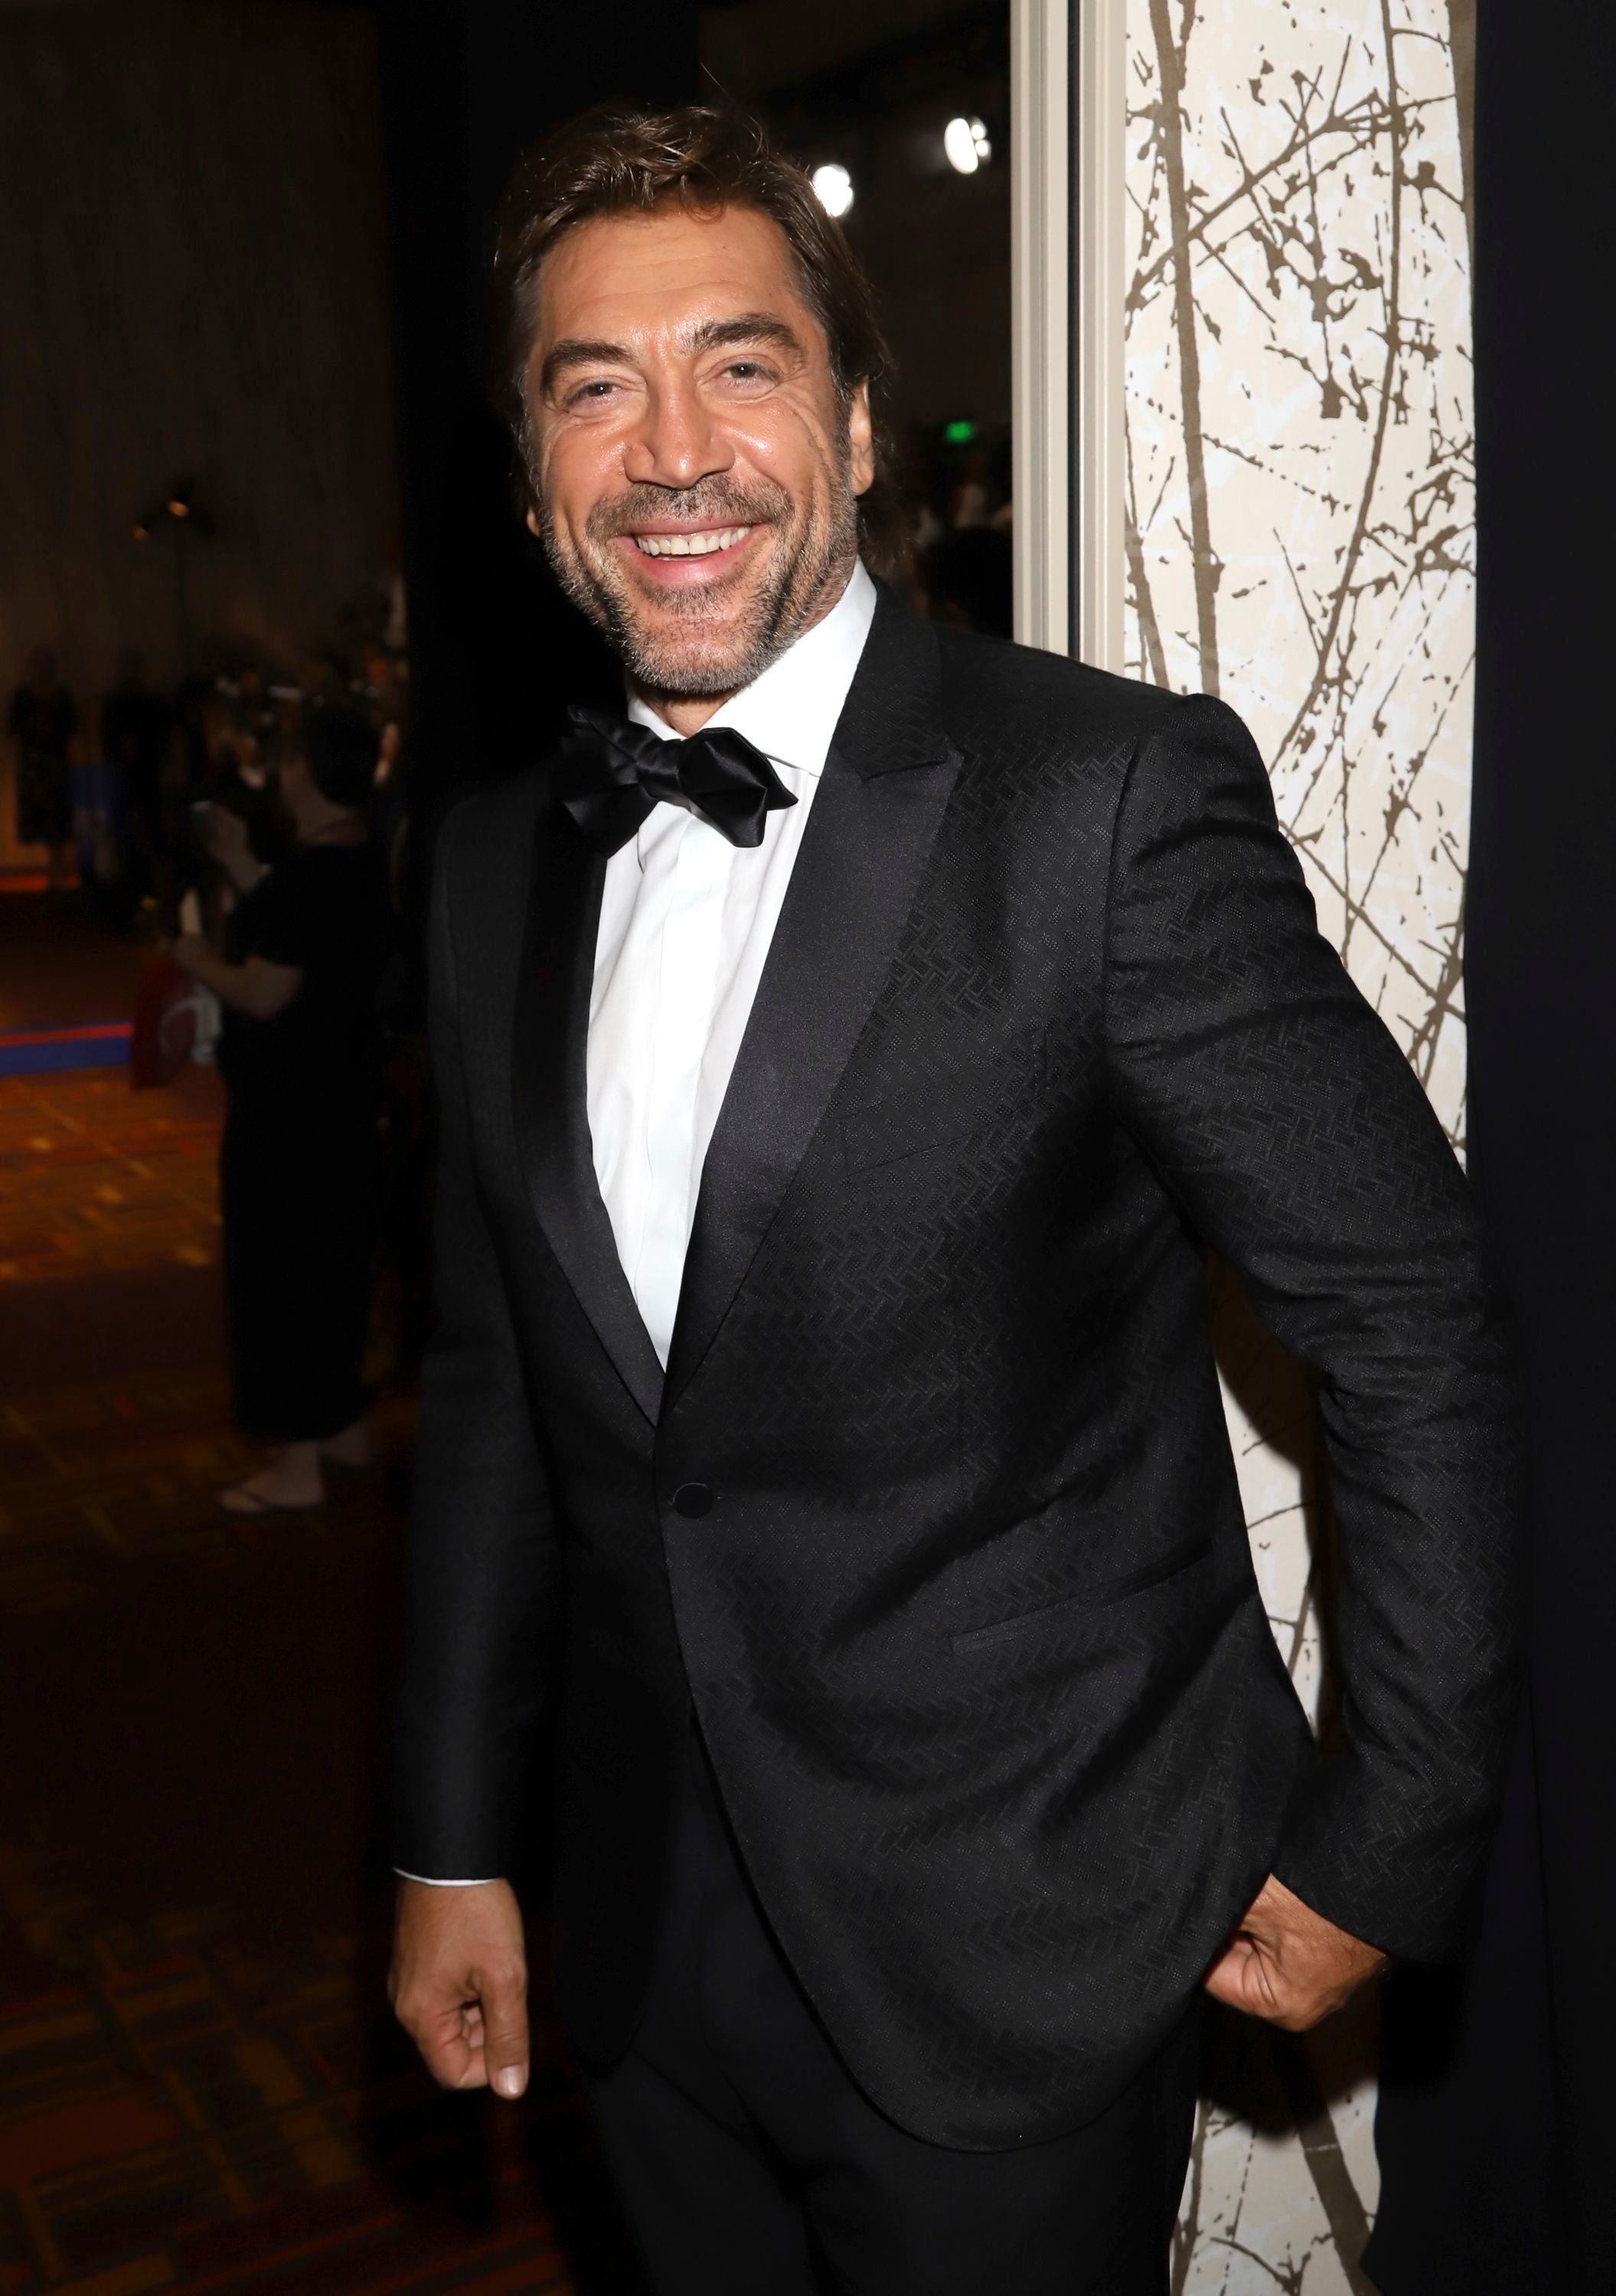 Javier Bardem at the 70th Primetime Emmy Awards in Los Angeles on Sept. 17, 2018.